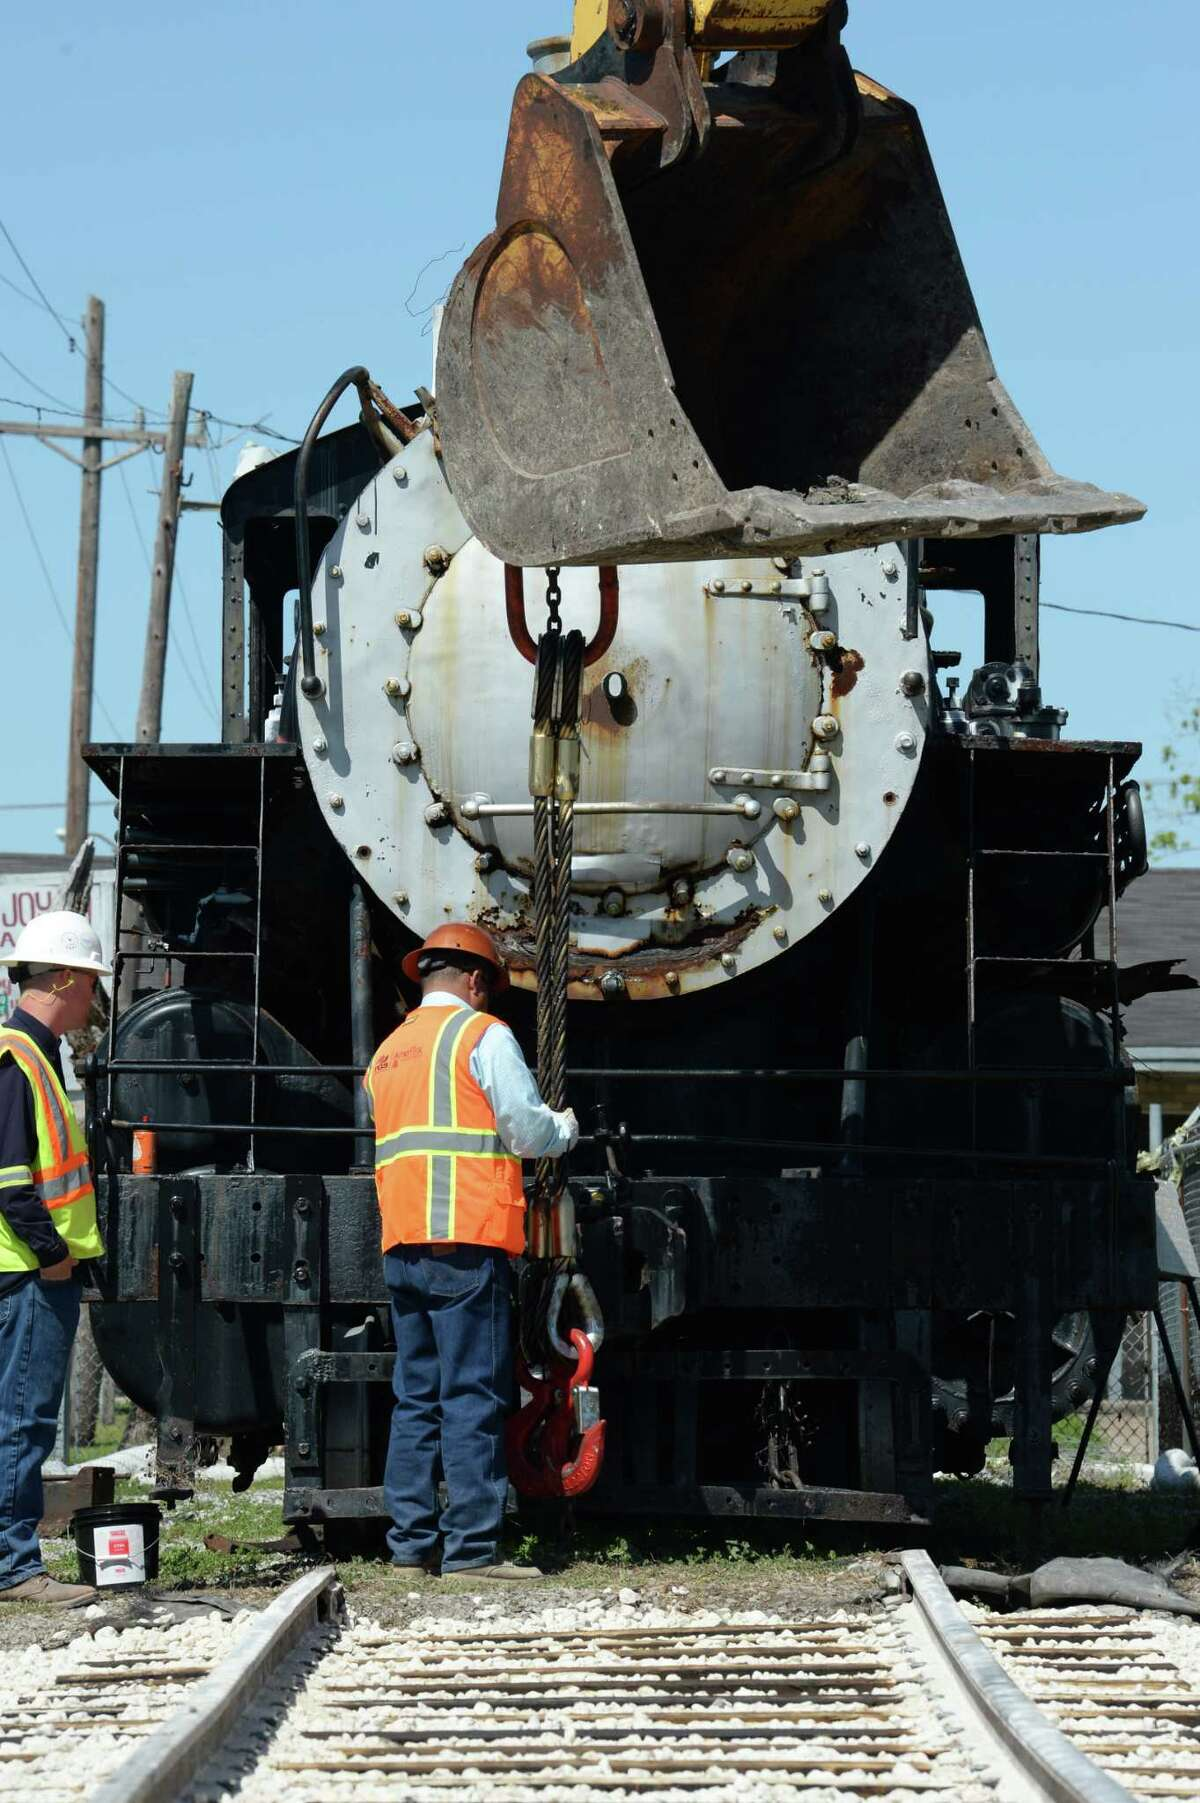 After building train tracks at Port Arthur's Bryan Park earlier this week, crews prepare a locomotive Thursday that will be moved on Friday. Organizers plan to use a backhoe to pull the train. Photo taken Thursday, April 26, 2017 Guiseppe Barranco/The Enterprise